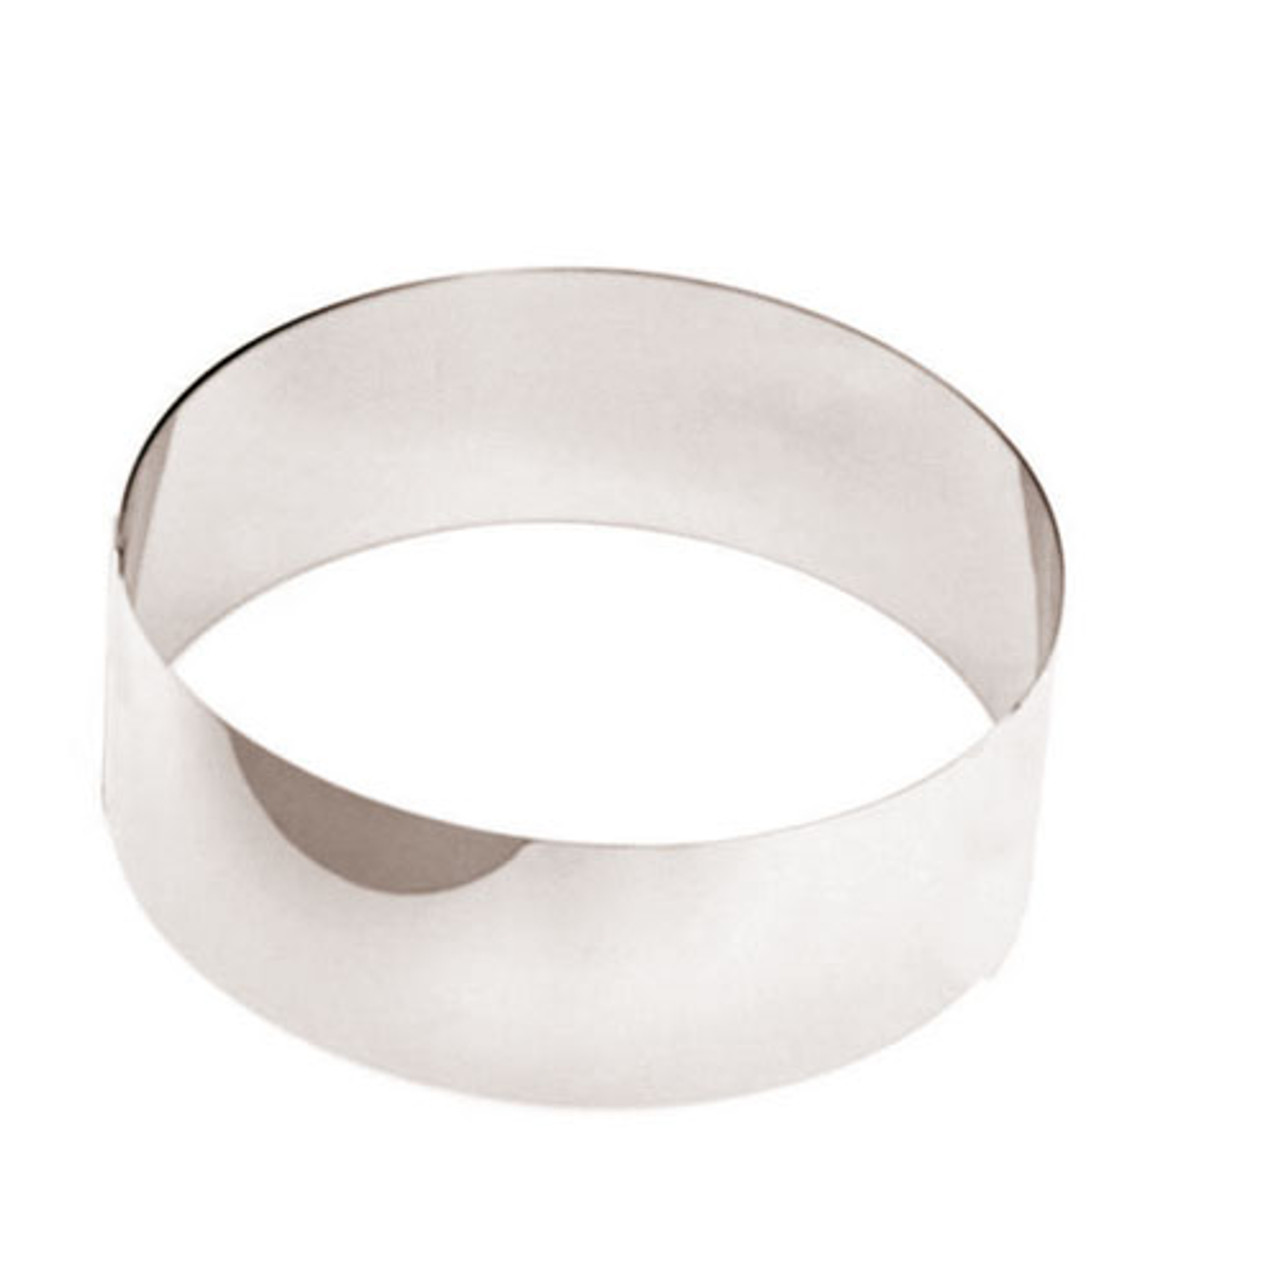 "Pastry Ring, Mousse, DIA 3 1/8"" X 1 3/4"""